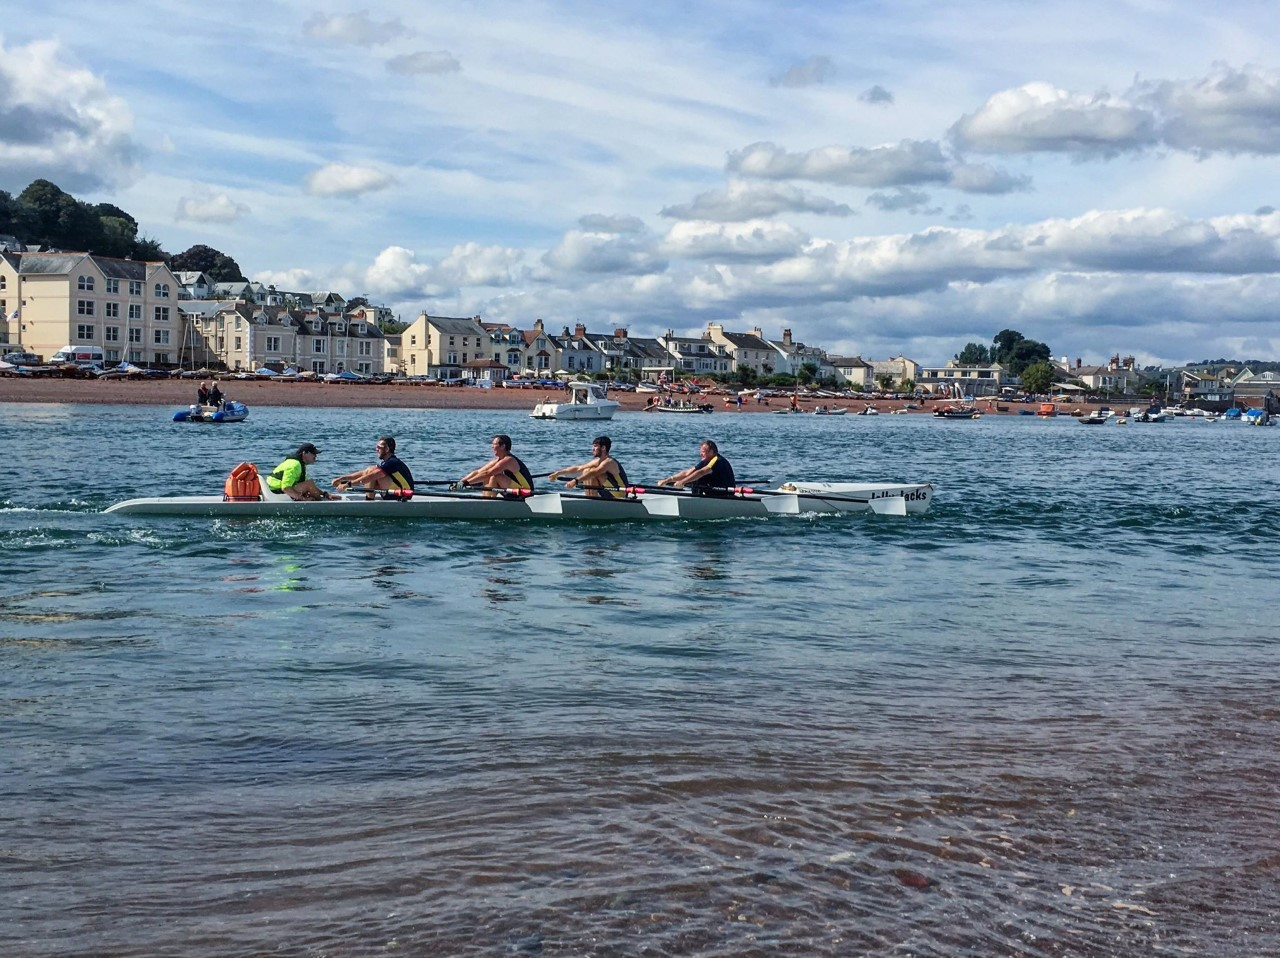 September regatta in Teignmouth 2018